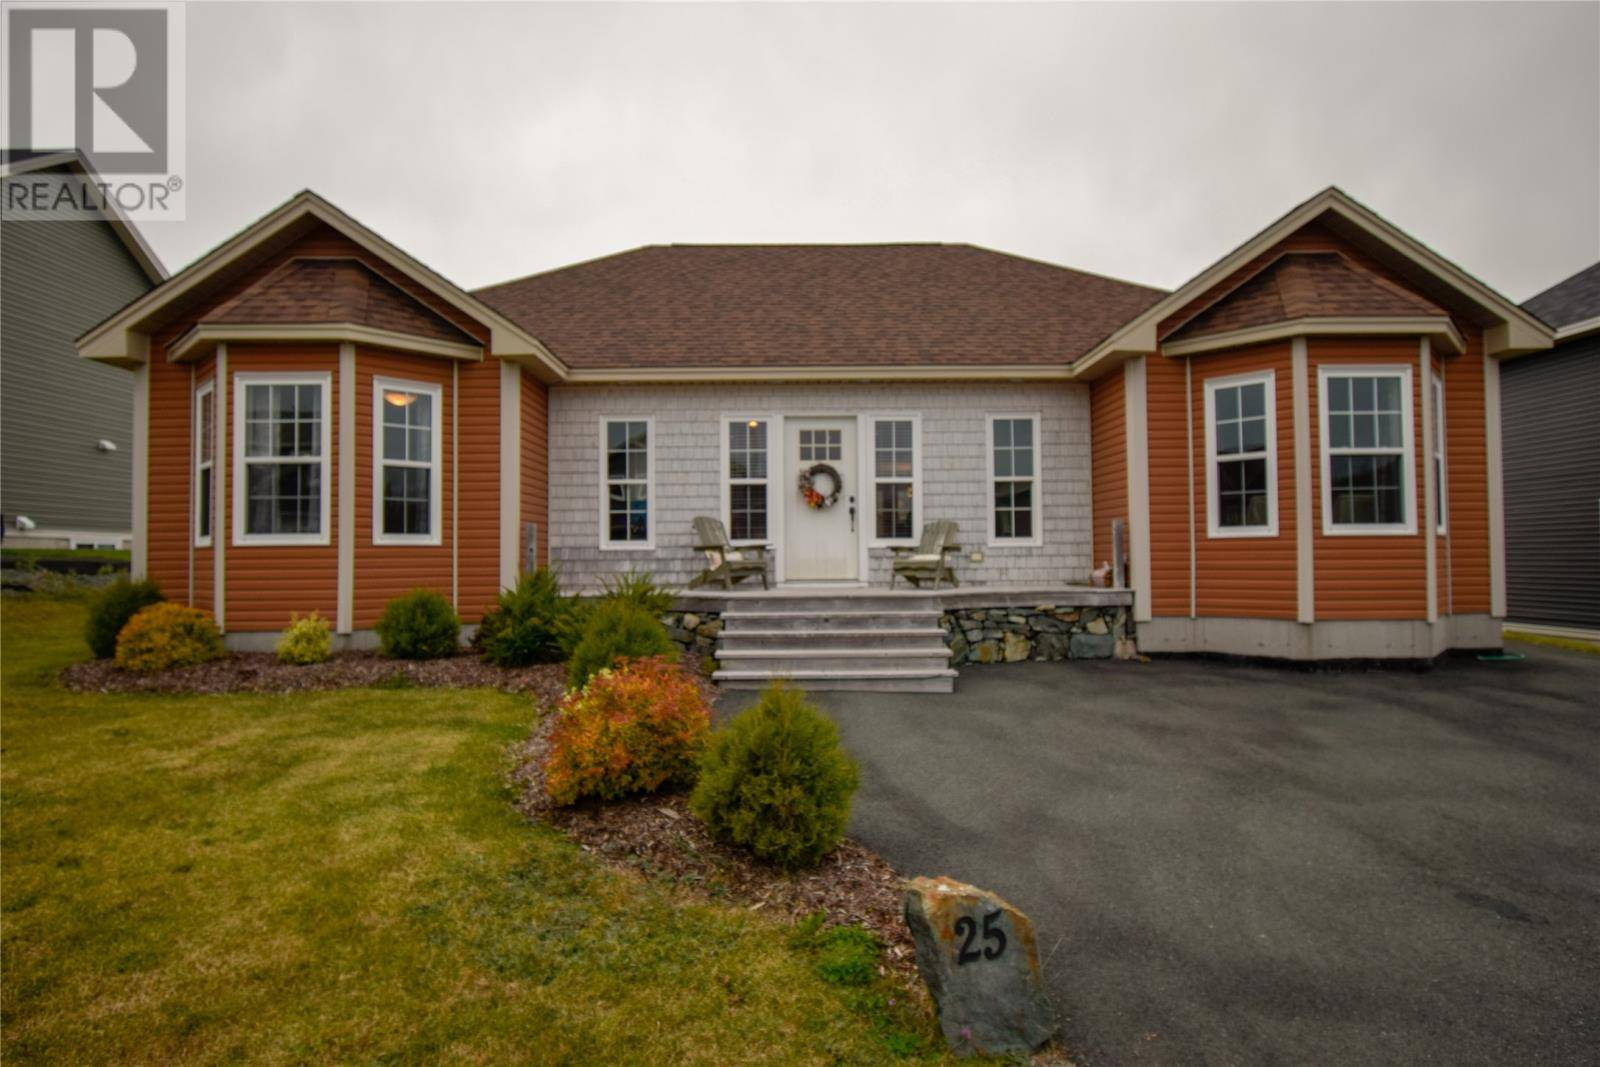 House for sale at 25 Newbury St Portugal Cove/st. Philip's Newfoundland - MLS: 1204612